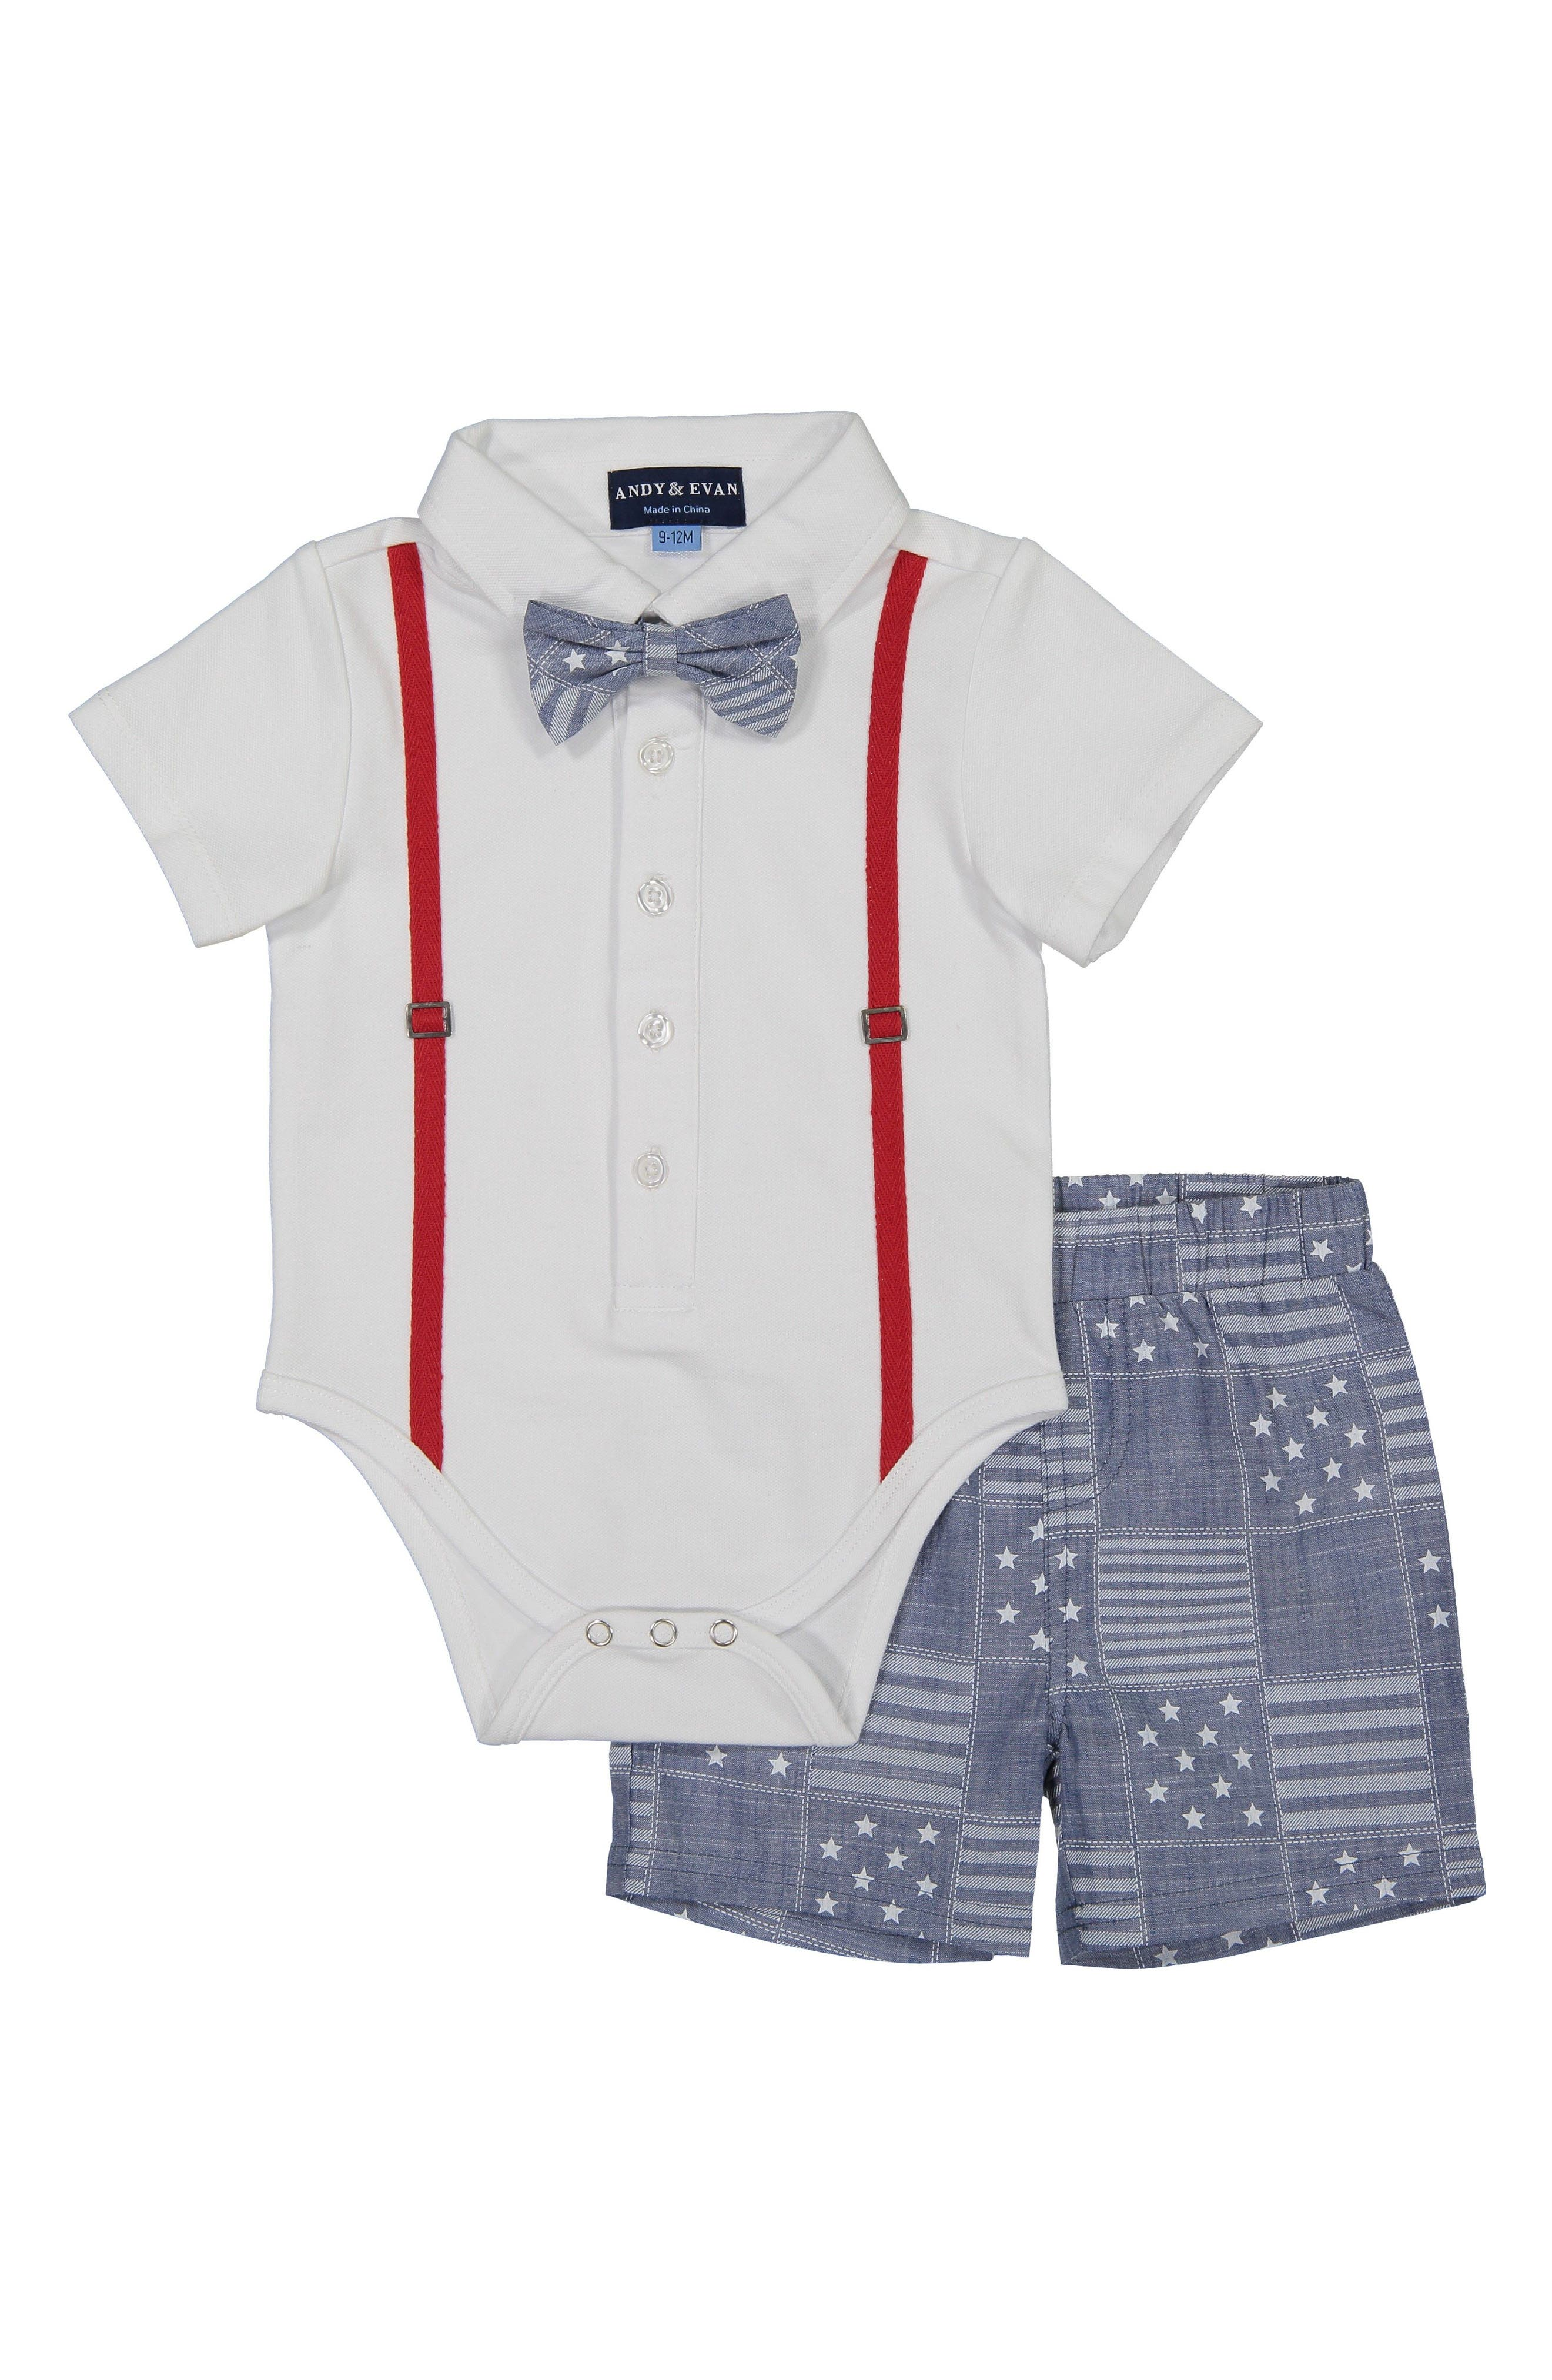 Alternate Image 1 Selected - Andy & Evan All-American Polo, Bow Tie & Shorts Set (Baby Boys)